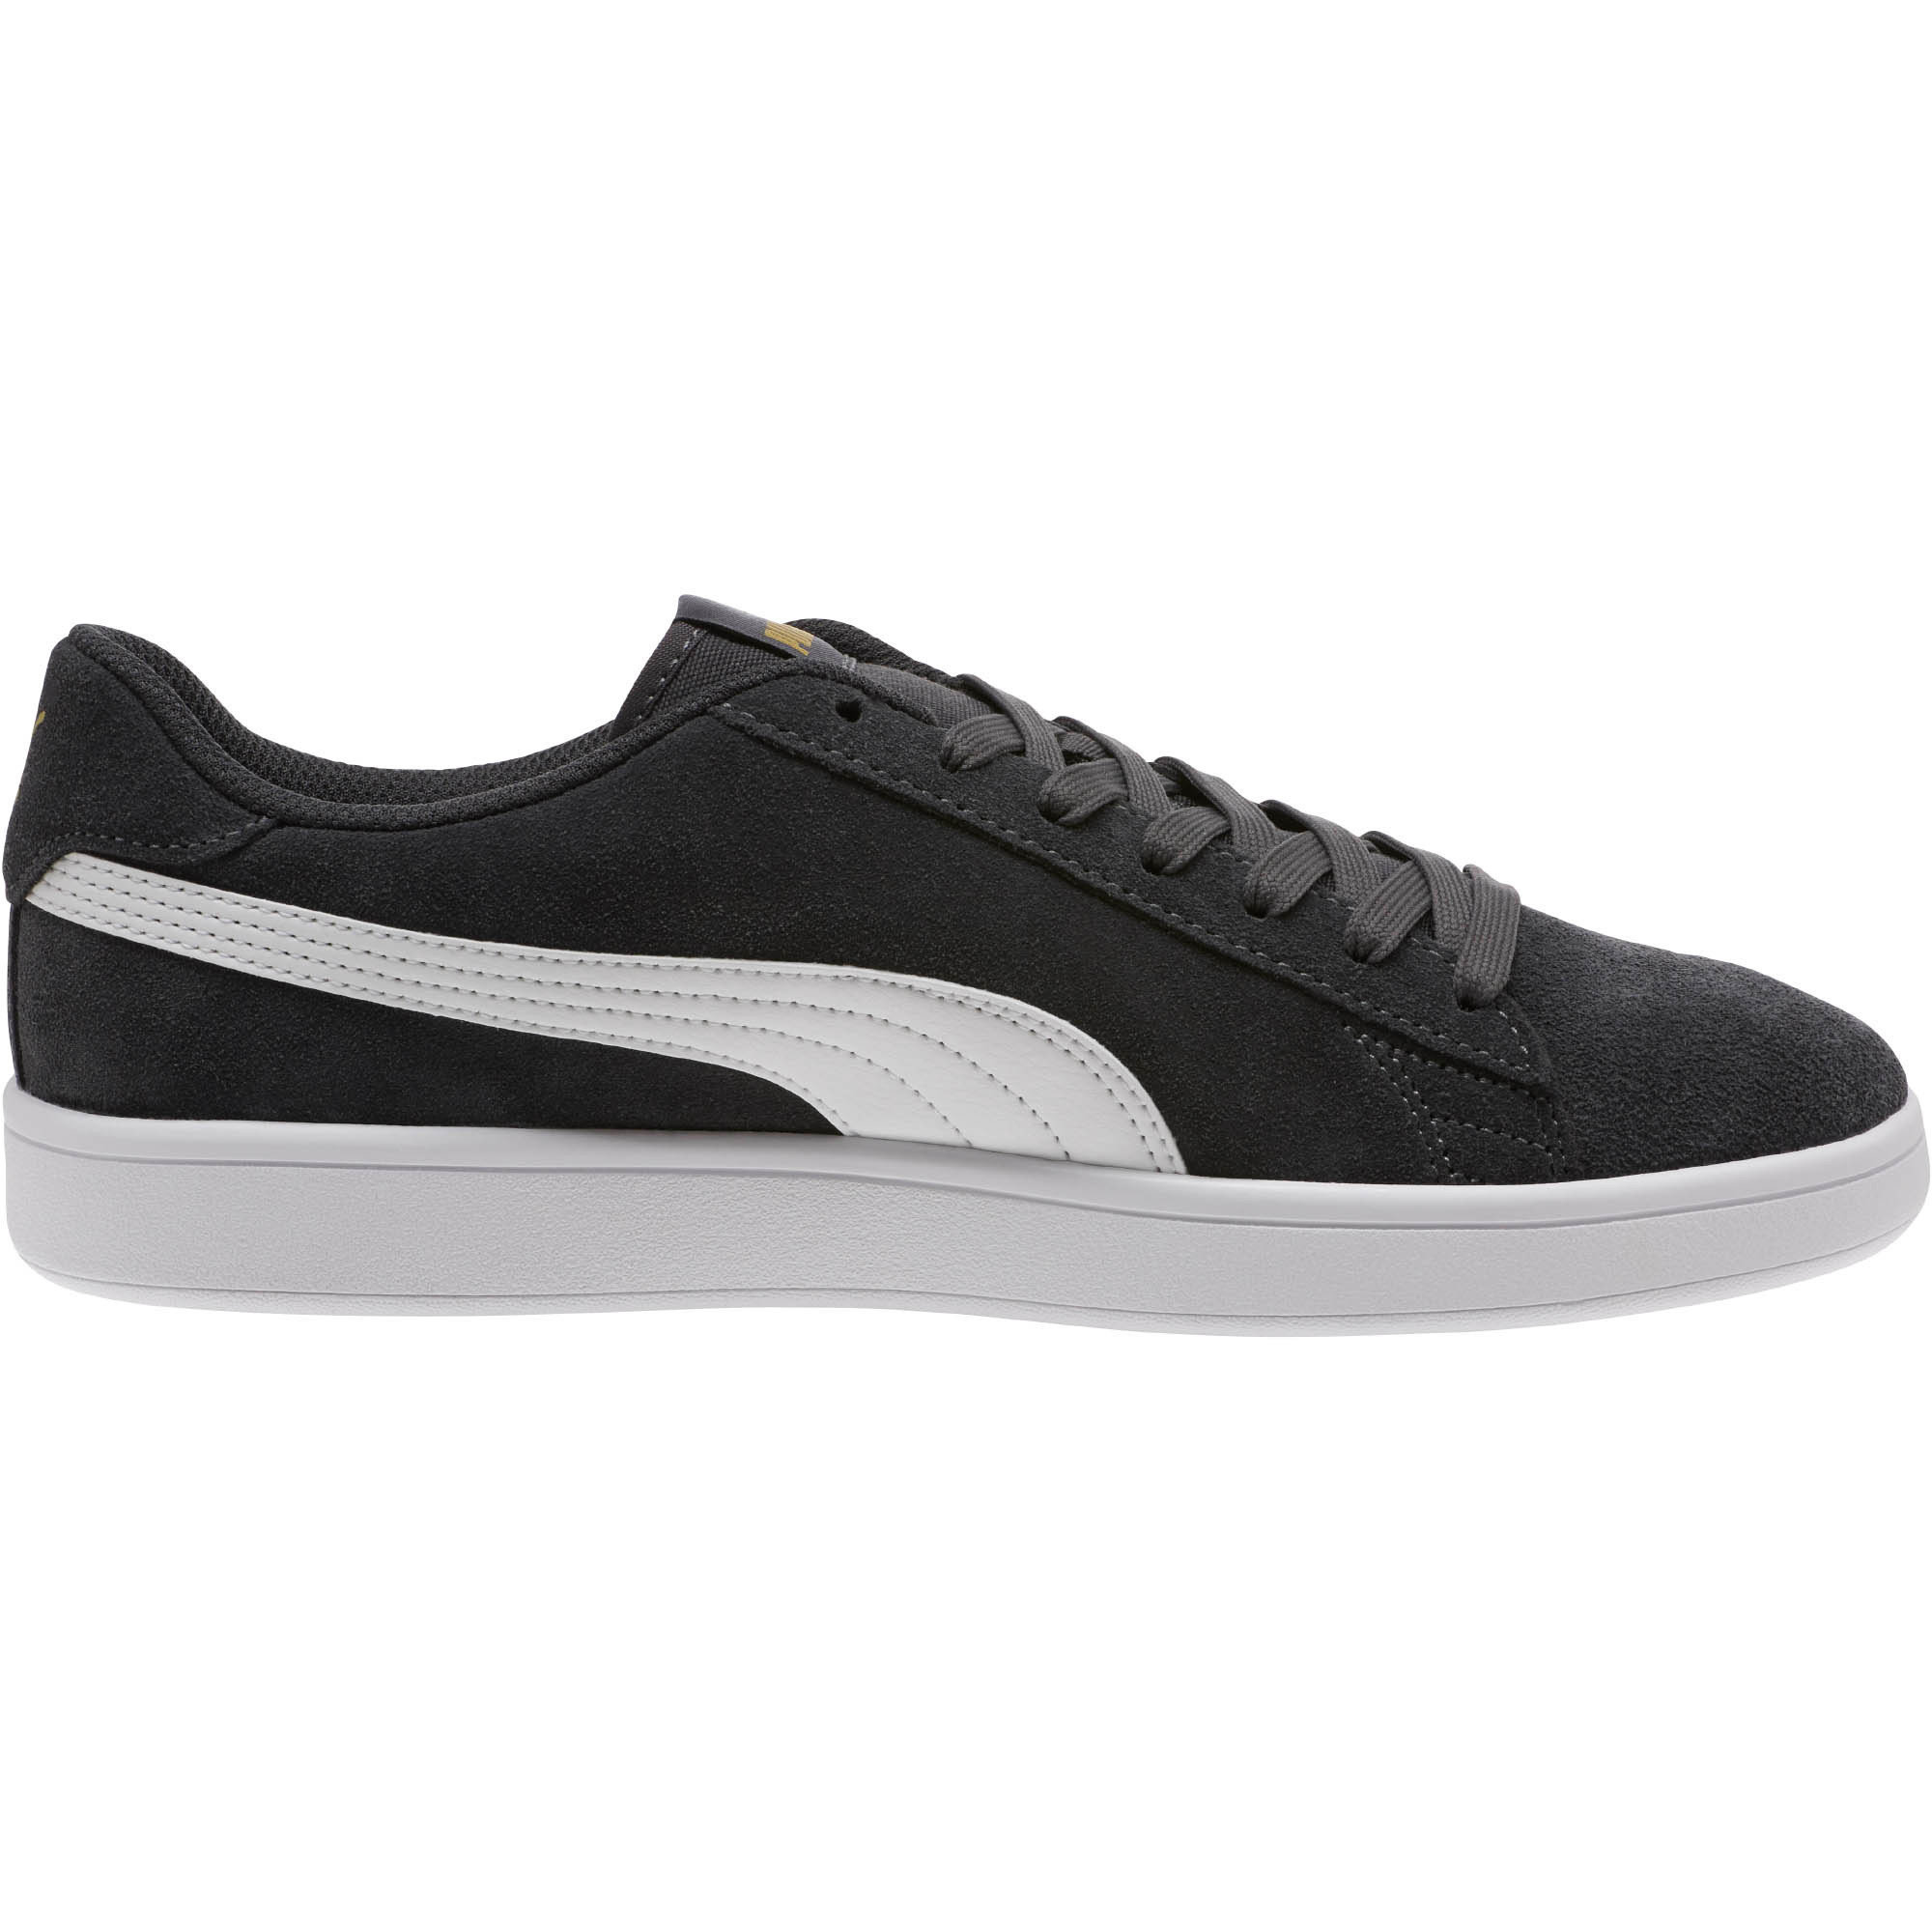 PUMA-PUMA-Smash-v2-Men-039-s-Sneakers-Men-Shoe-Basics thumbnail 36